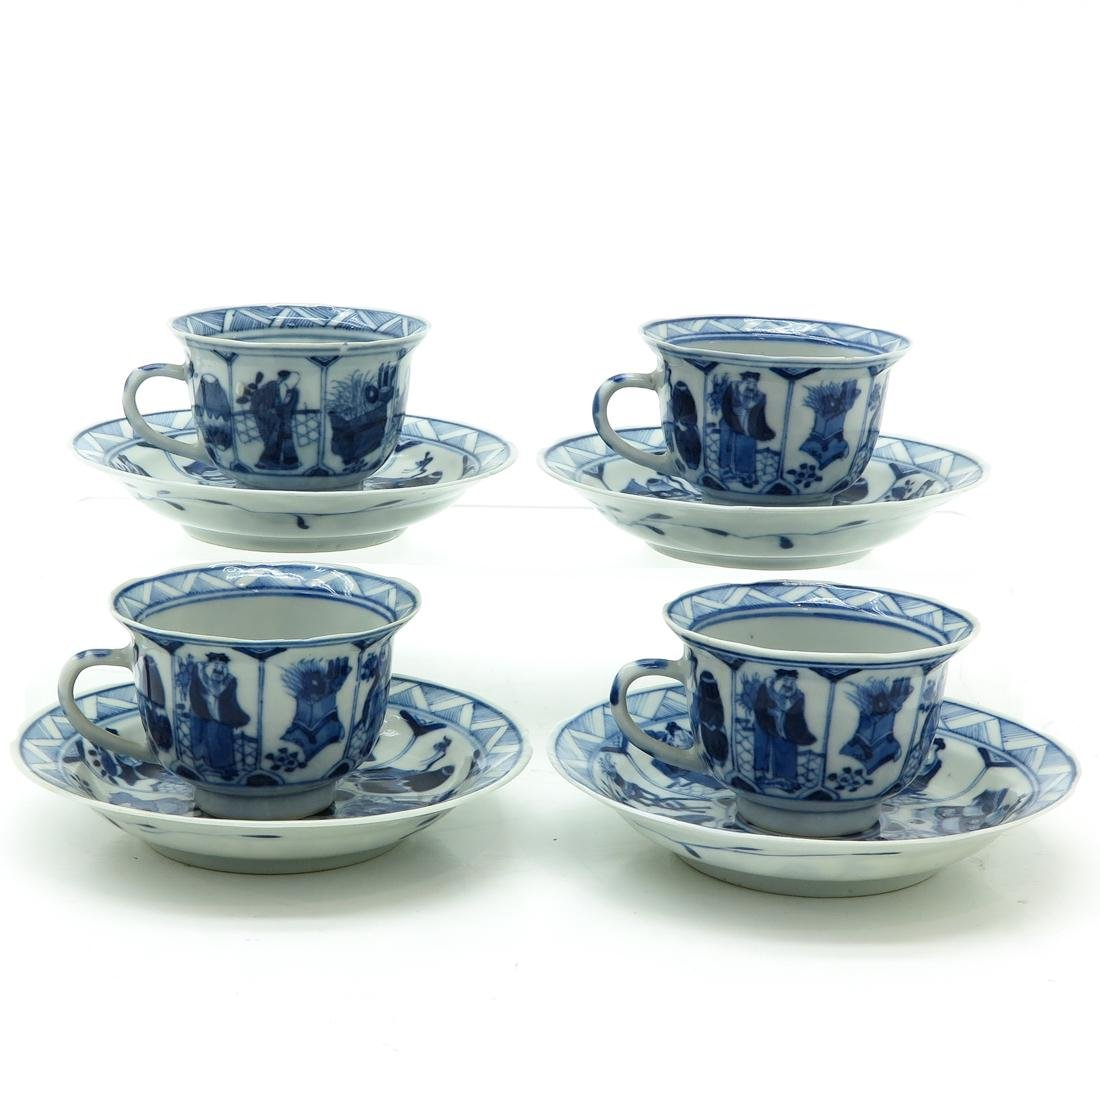 Lot of Cups and Saucers - 3